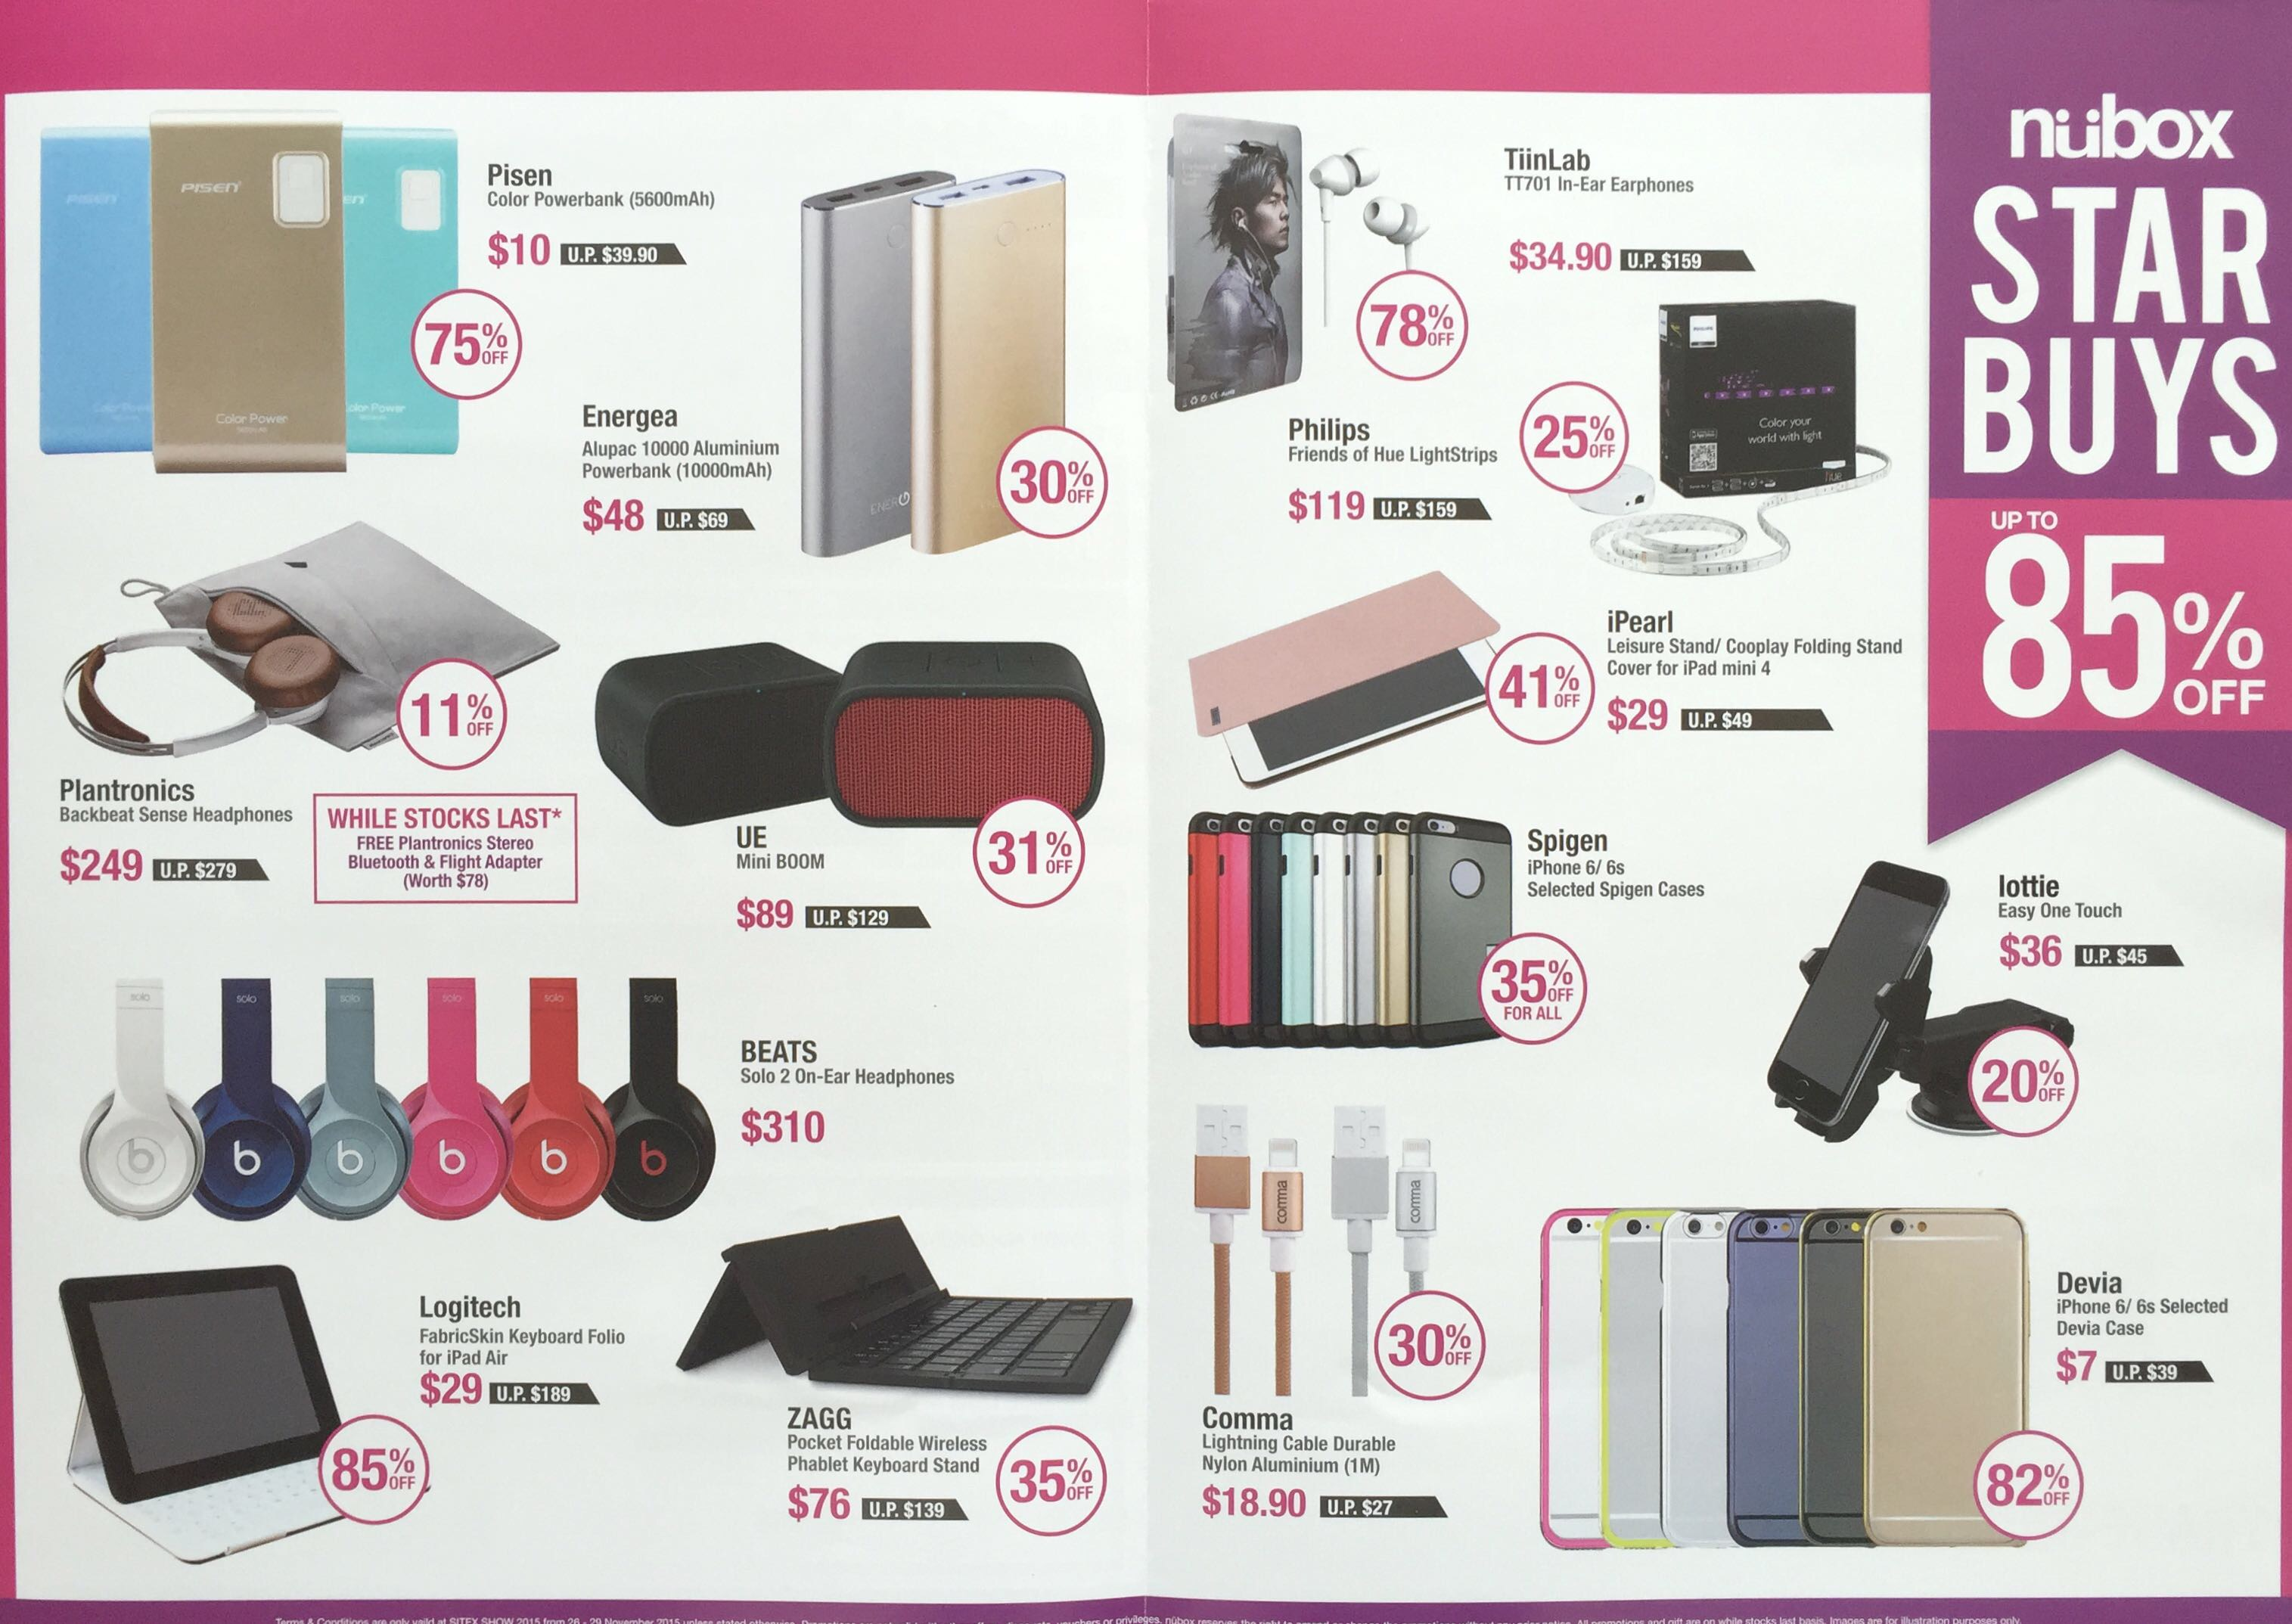 NUBOX @ SITEX 2015 - Star Buys up to 85% off